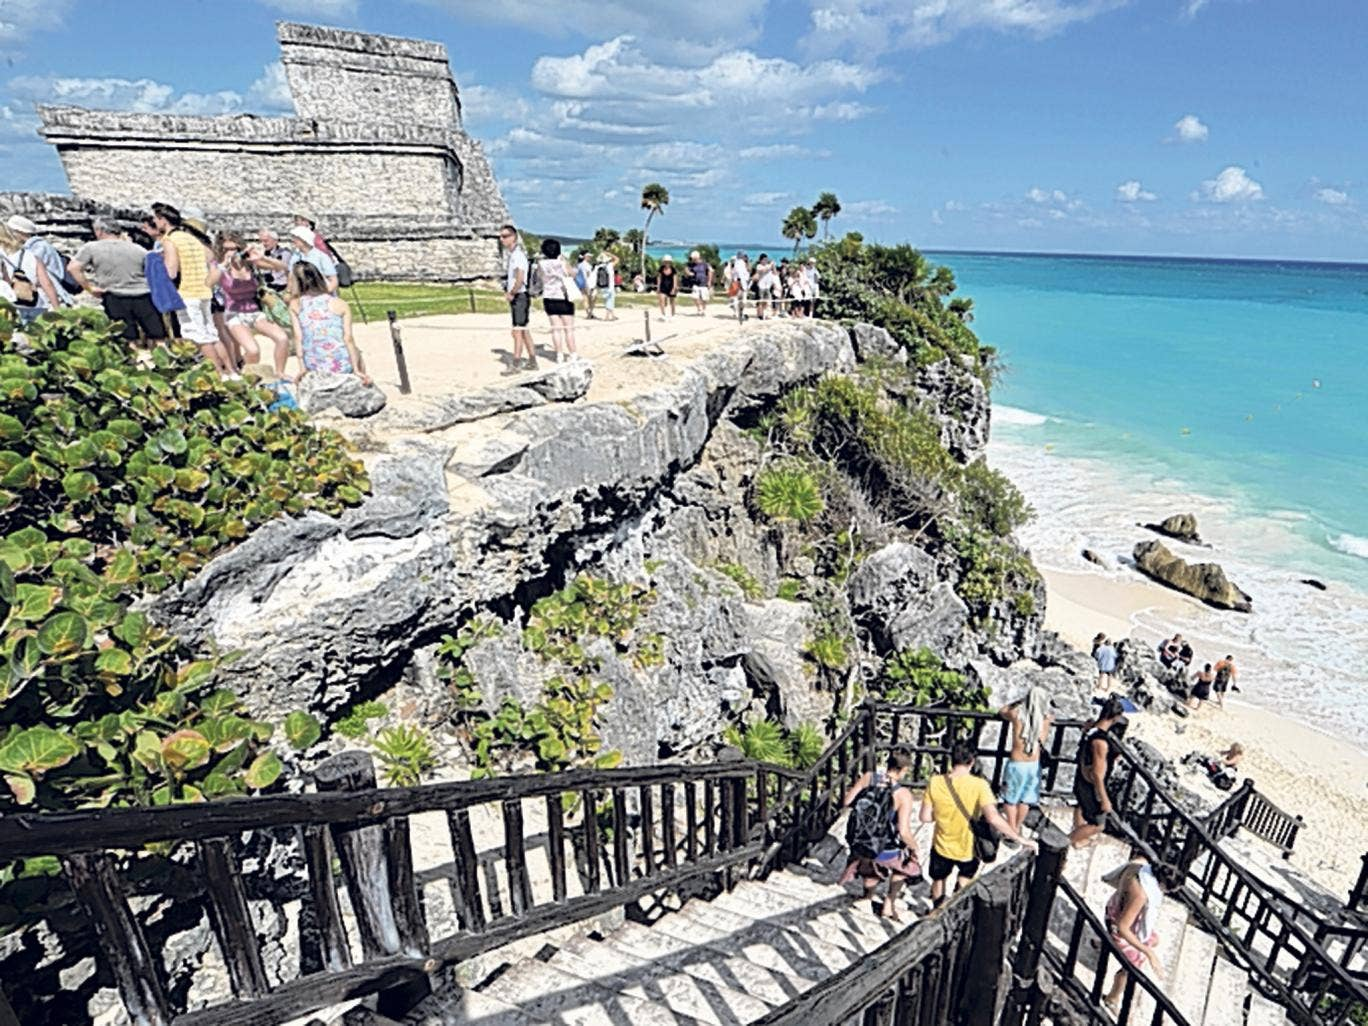 Cliff note: Tulum's Mayan ruins above the beach